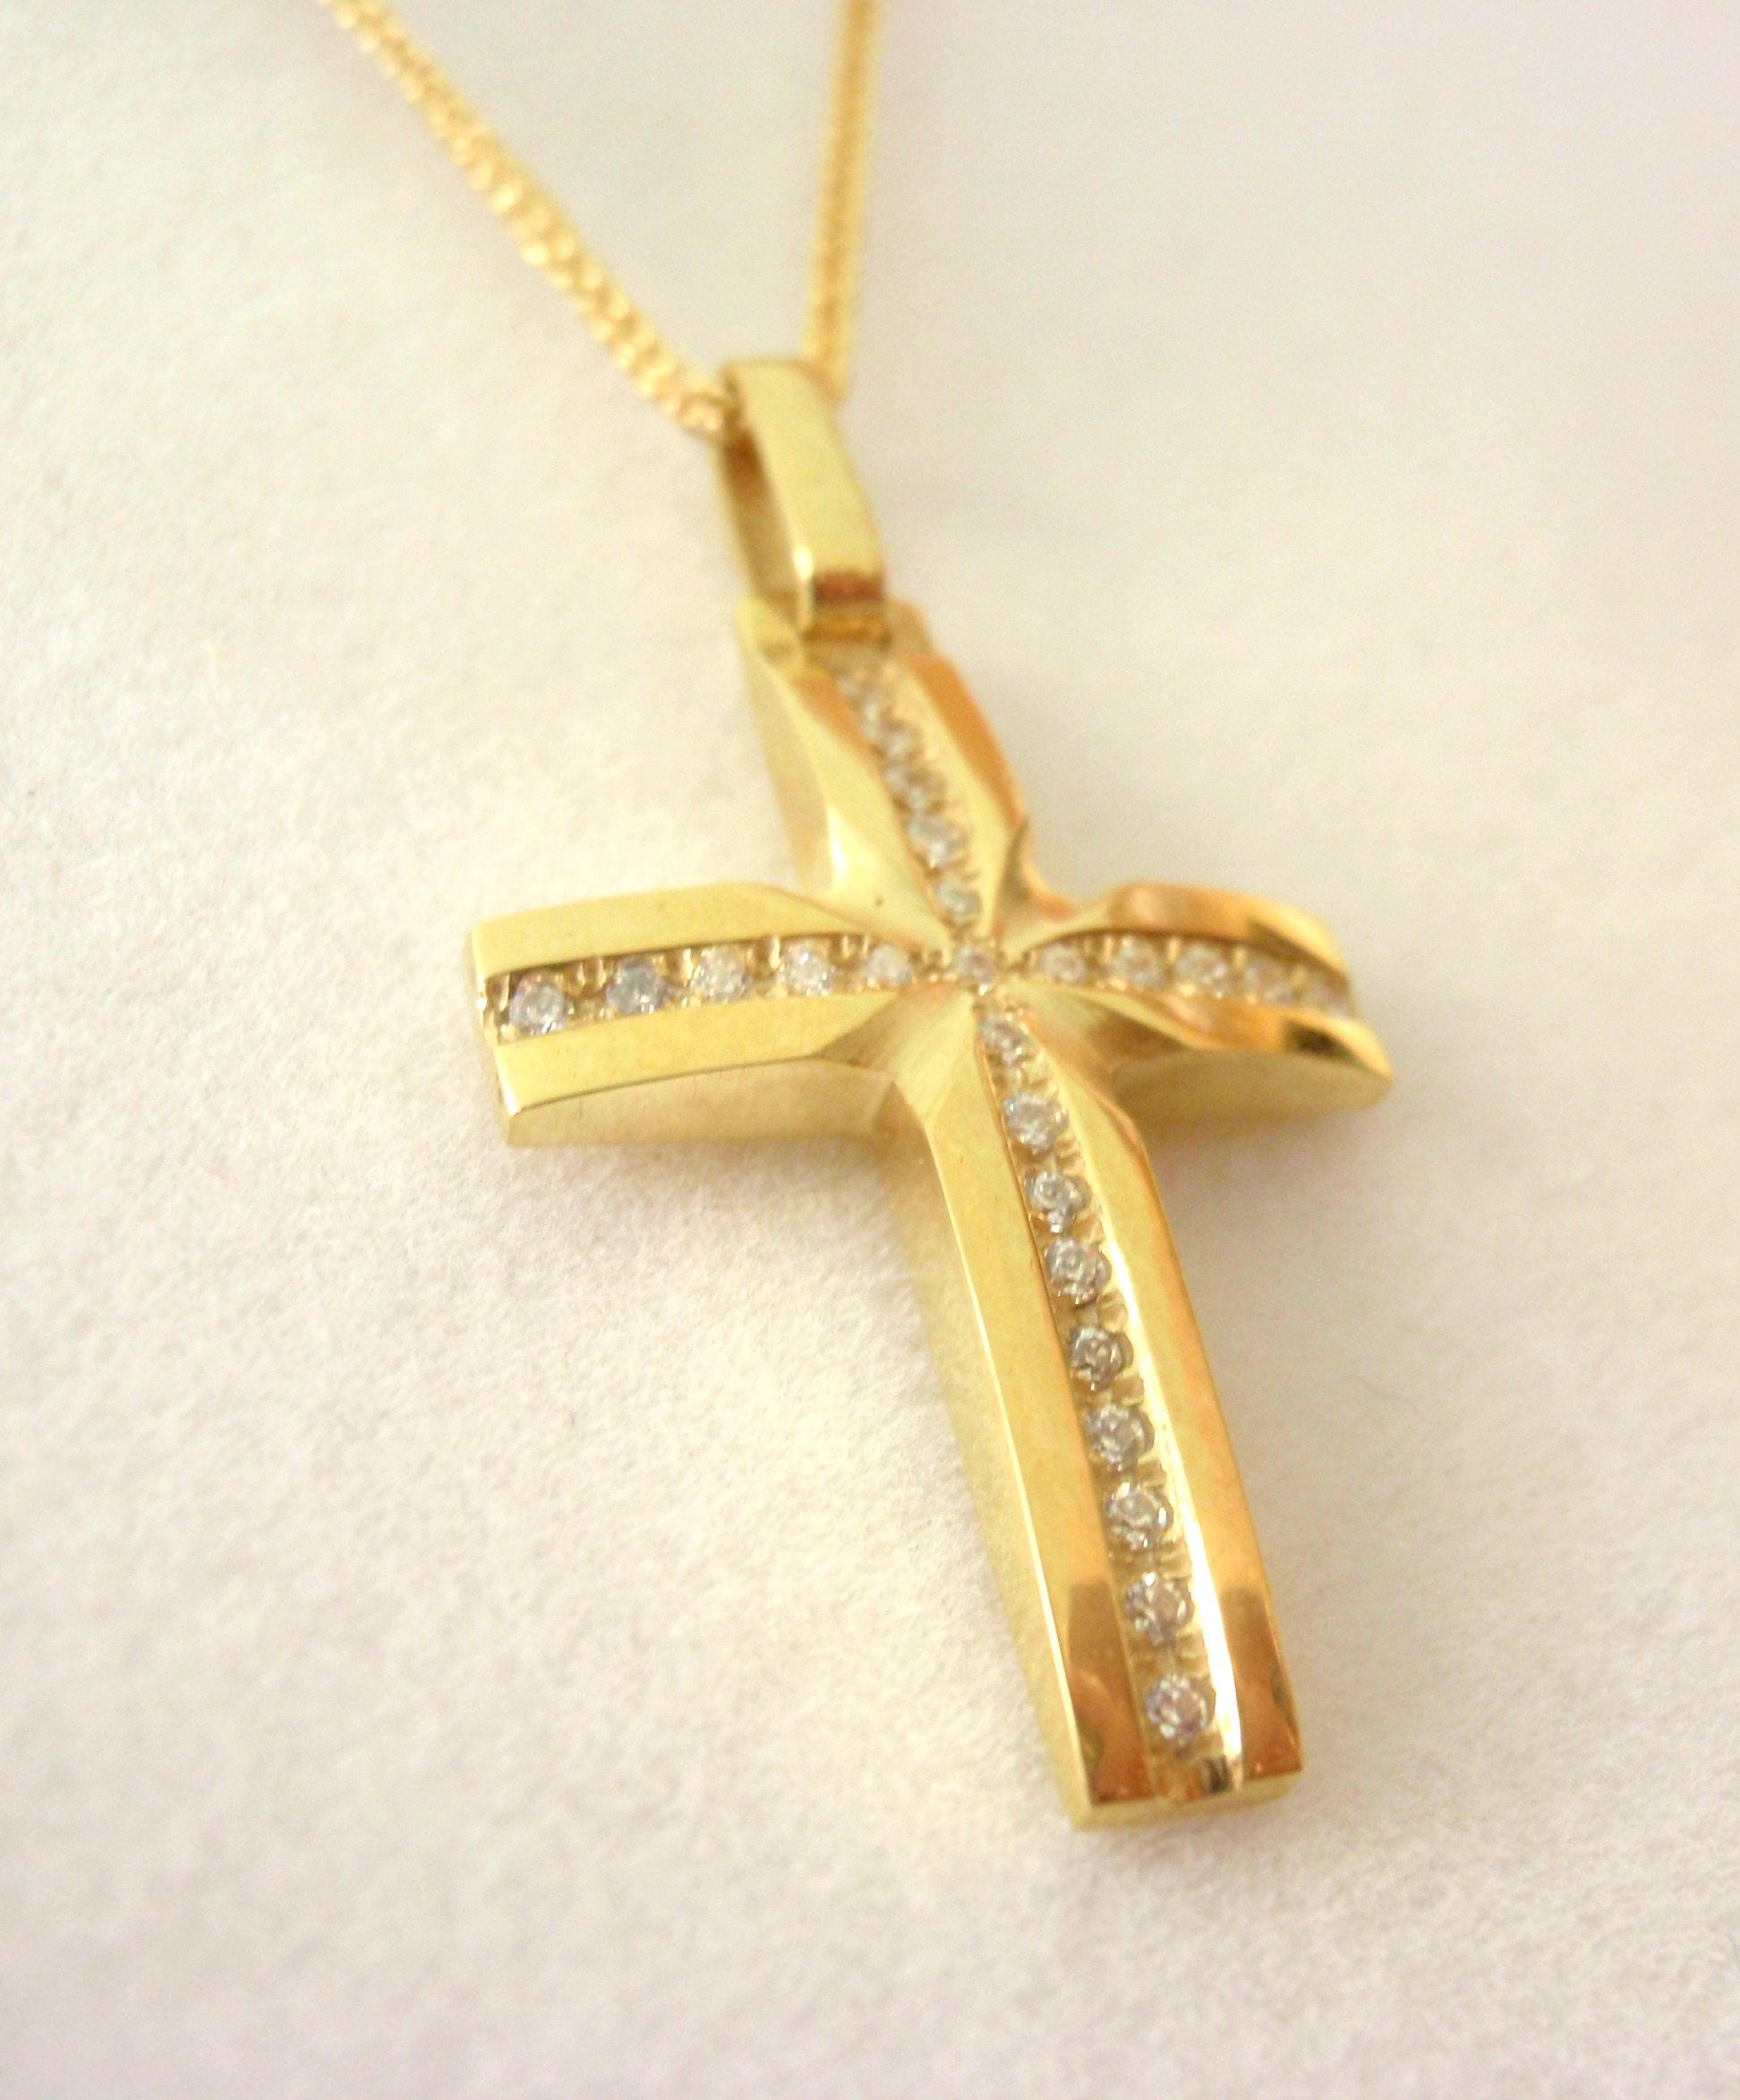 gold gross relicious handmade solid pin baptism cross golden pendant jewelry